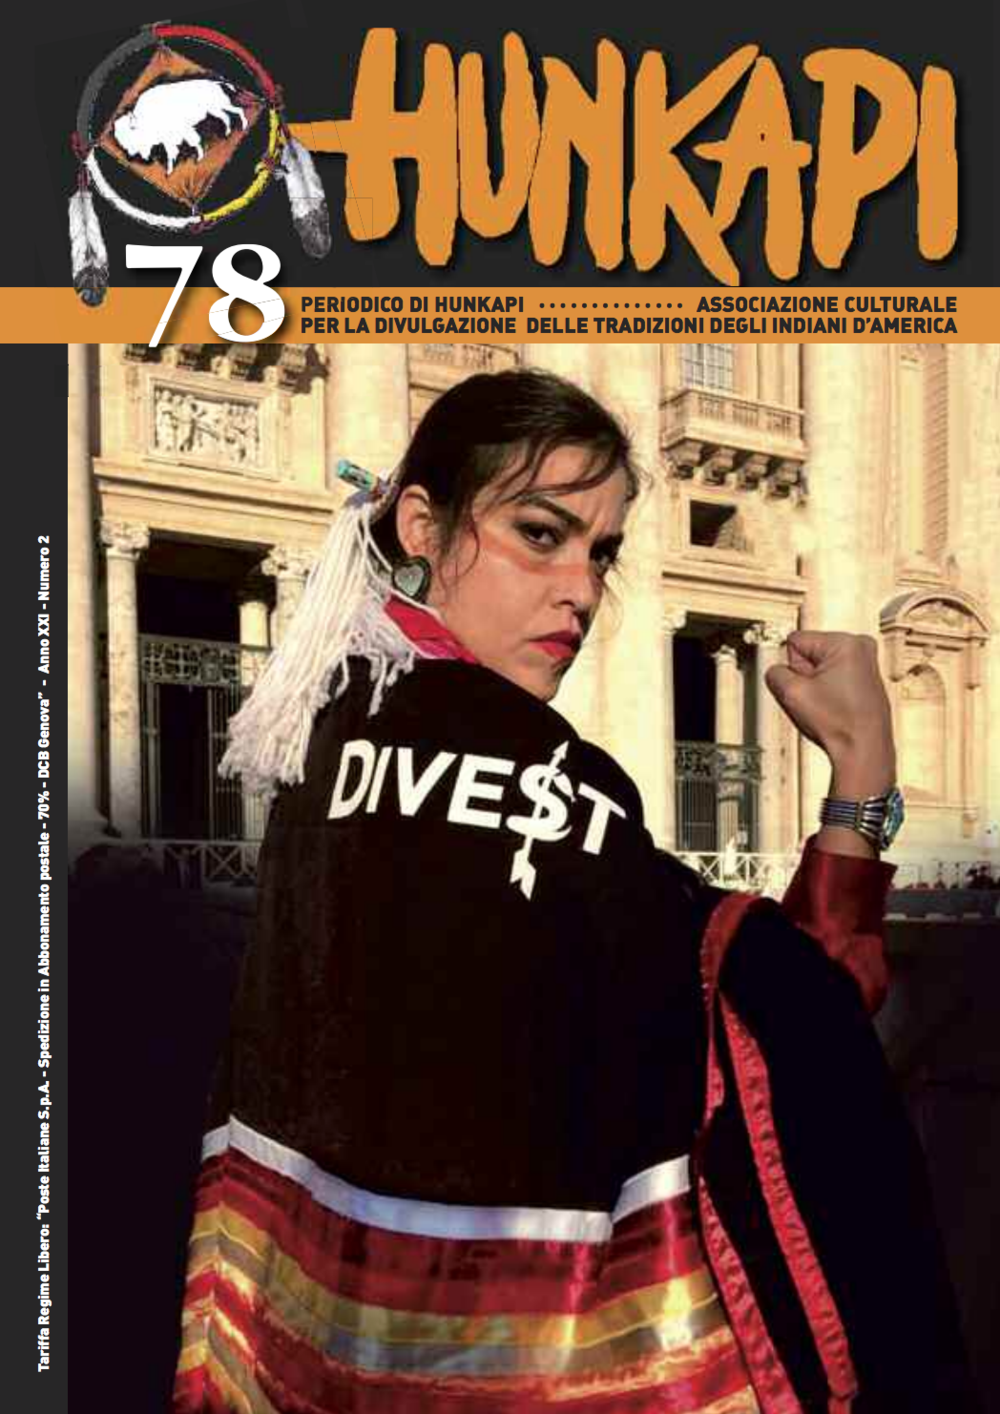 Cover of Italian publication,  Hunkapi,  2017.  Click here to view entire publication.